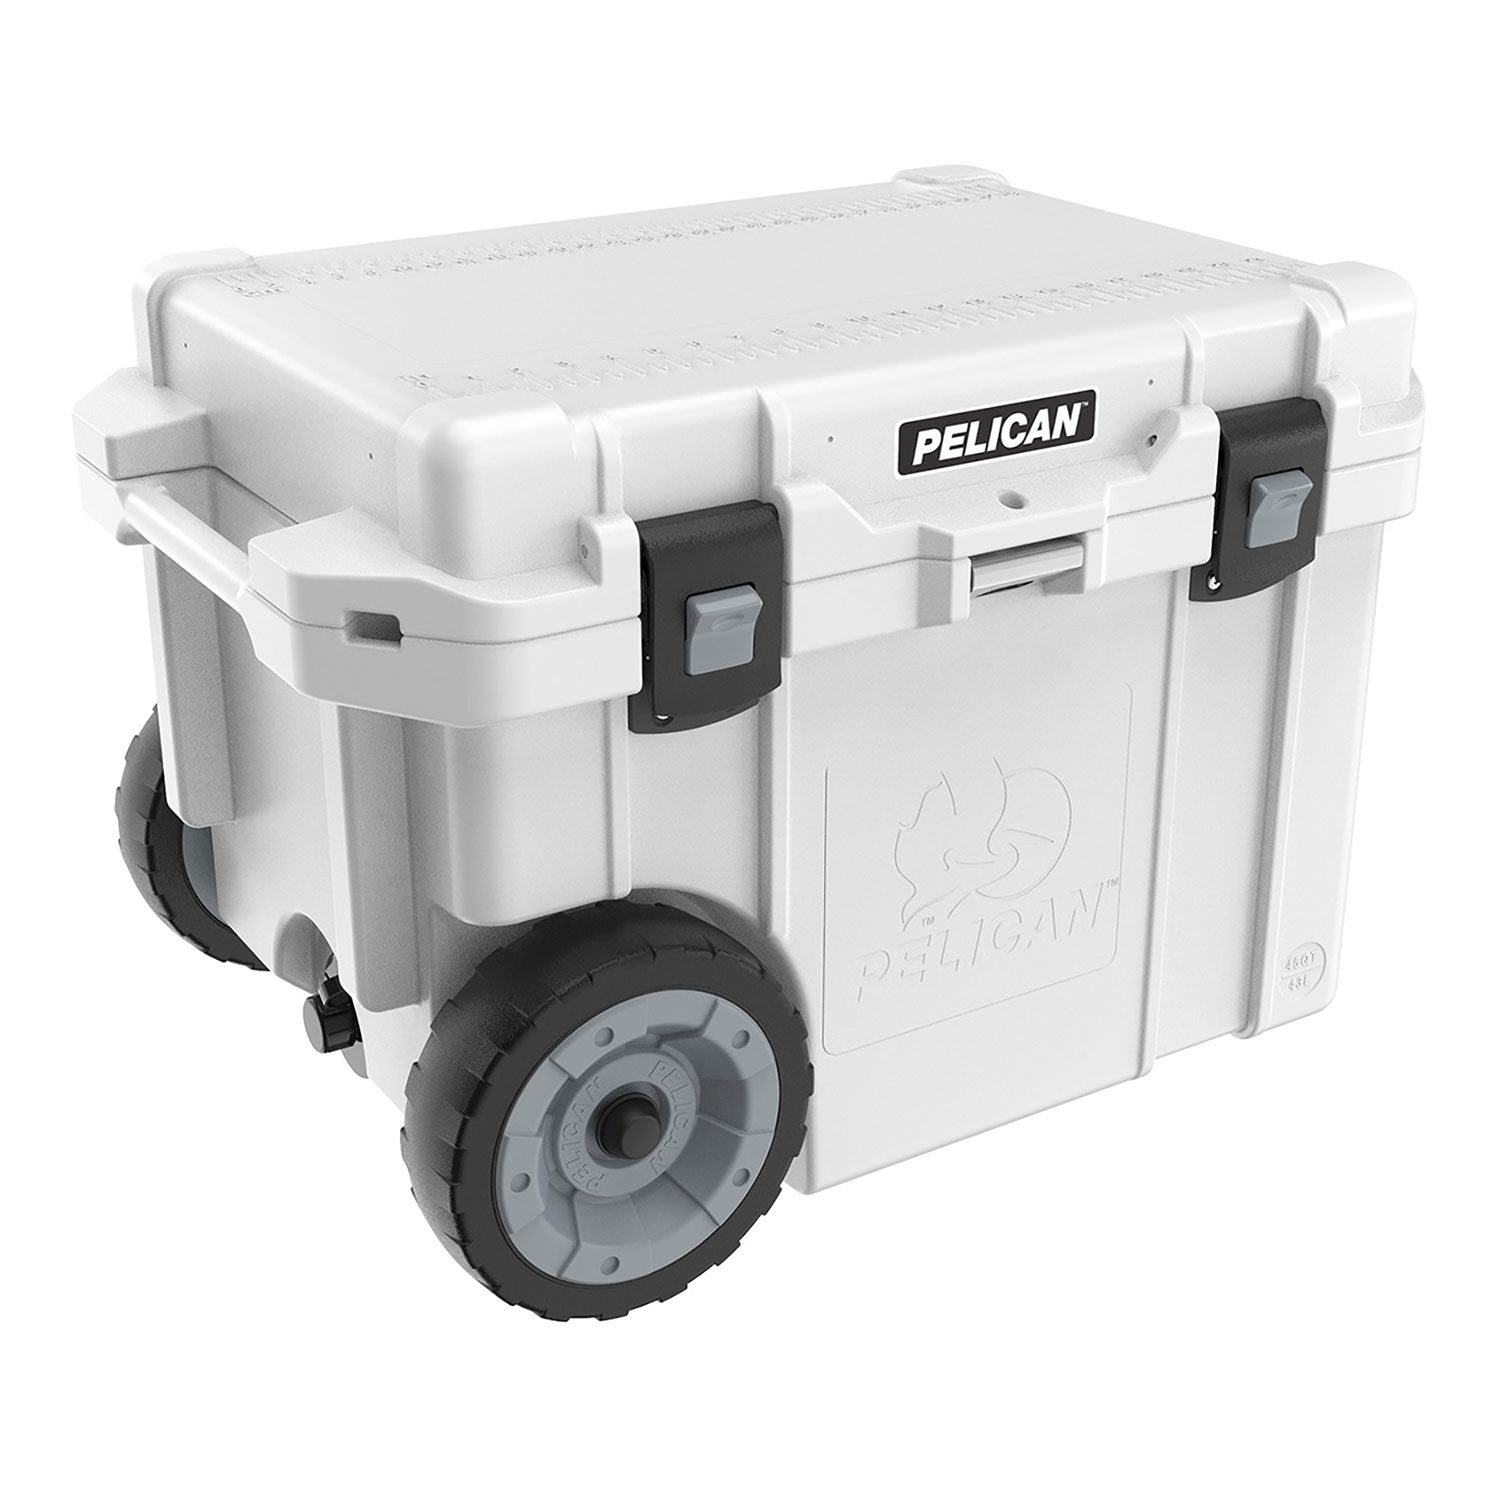 Pelican Elite Cooler with Wheels